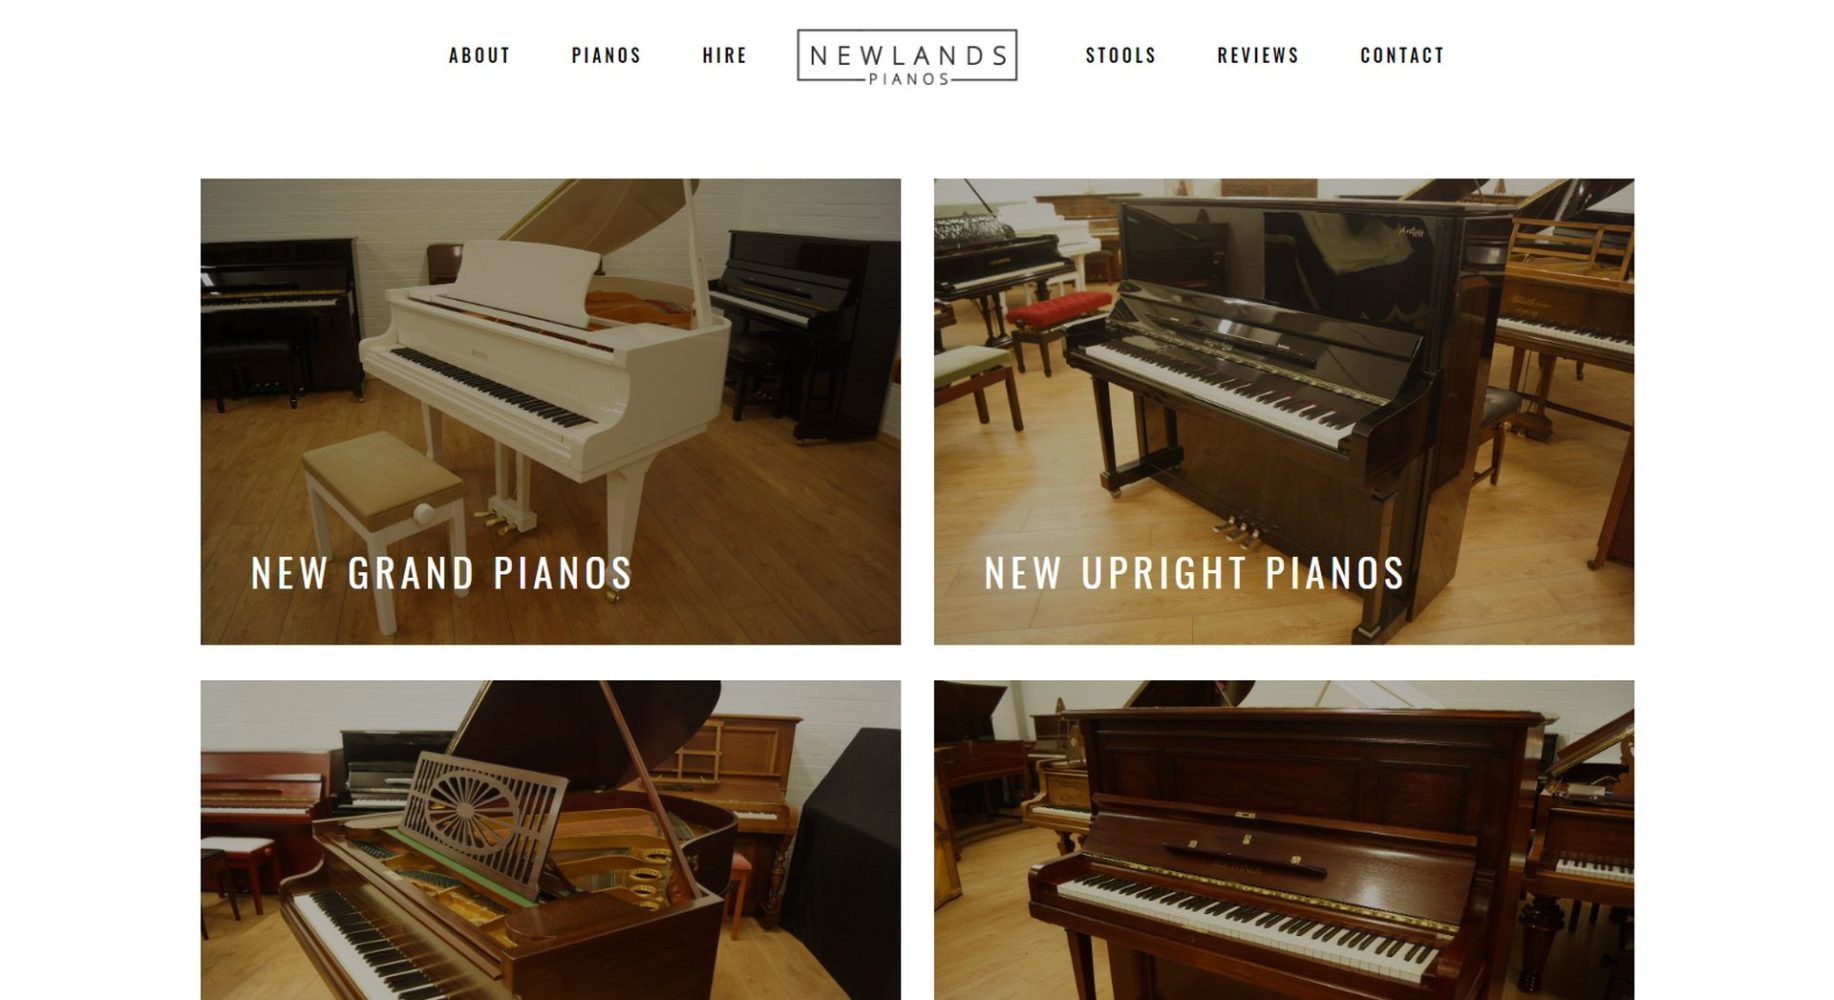 Newlands Pianos Website Design Shop